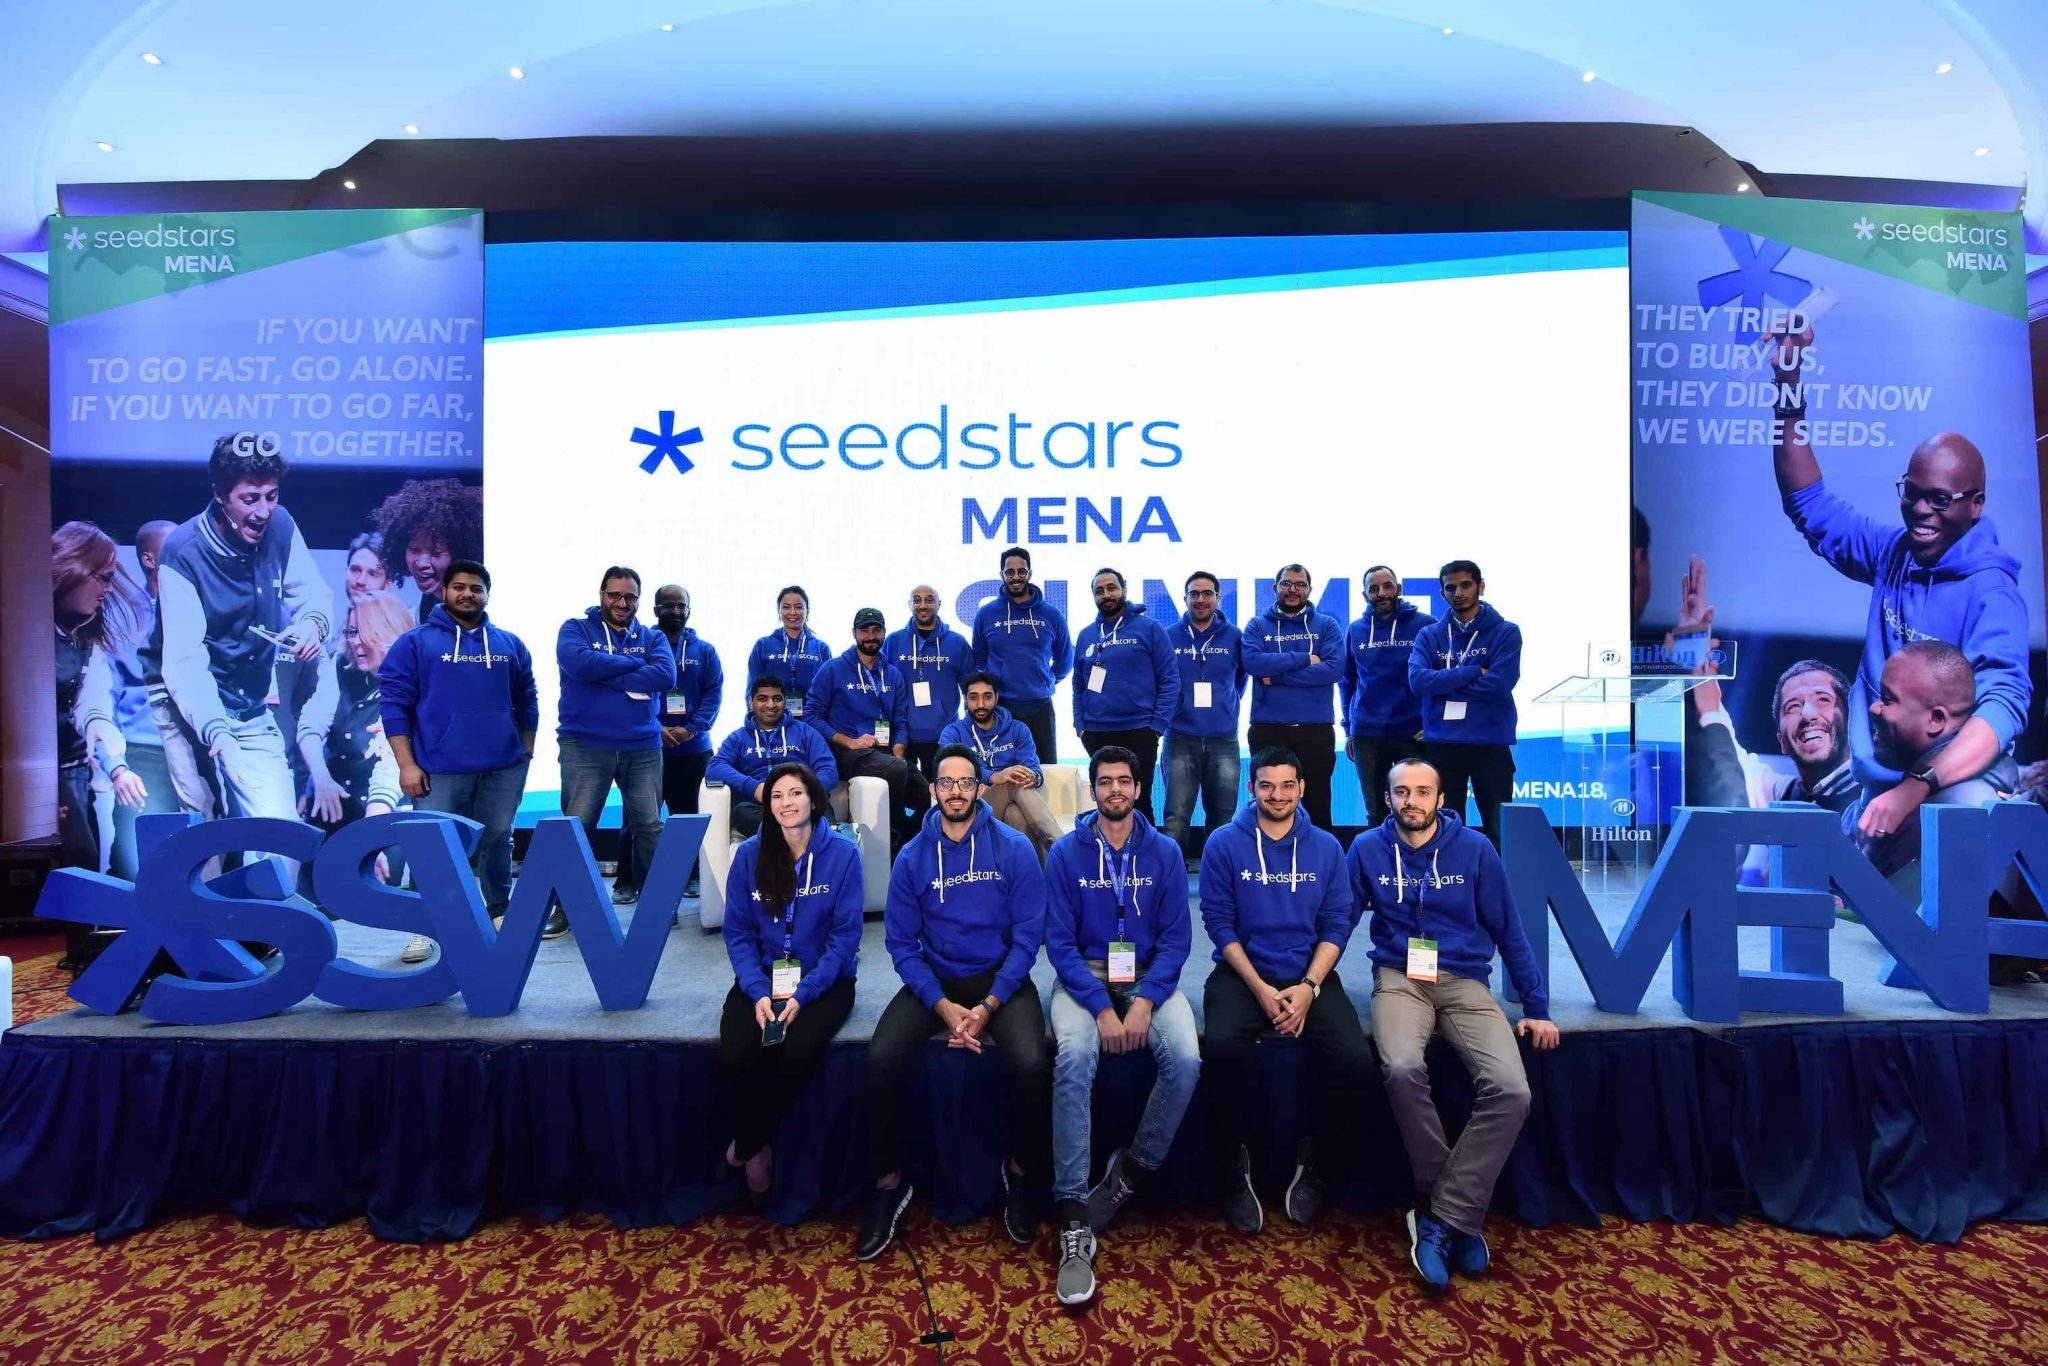 Bahraini startup is one step closer to winning $500,000 at Seedstars Summit